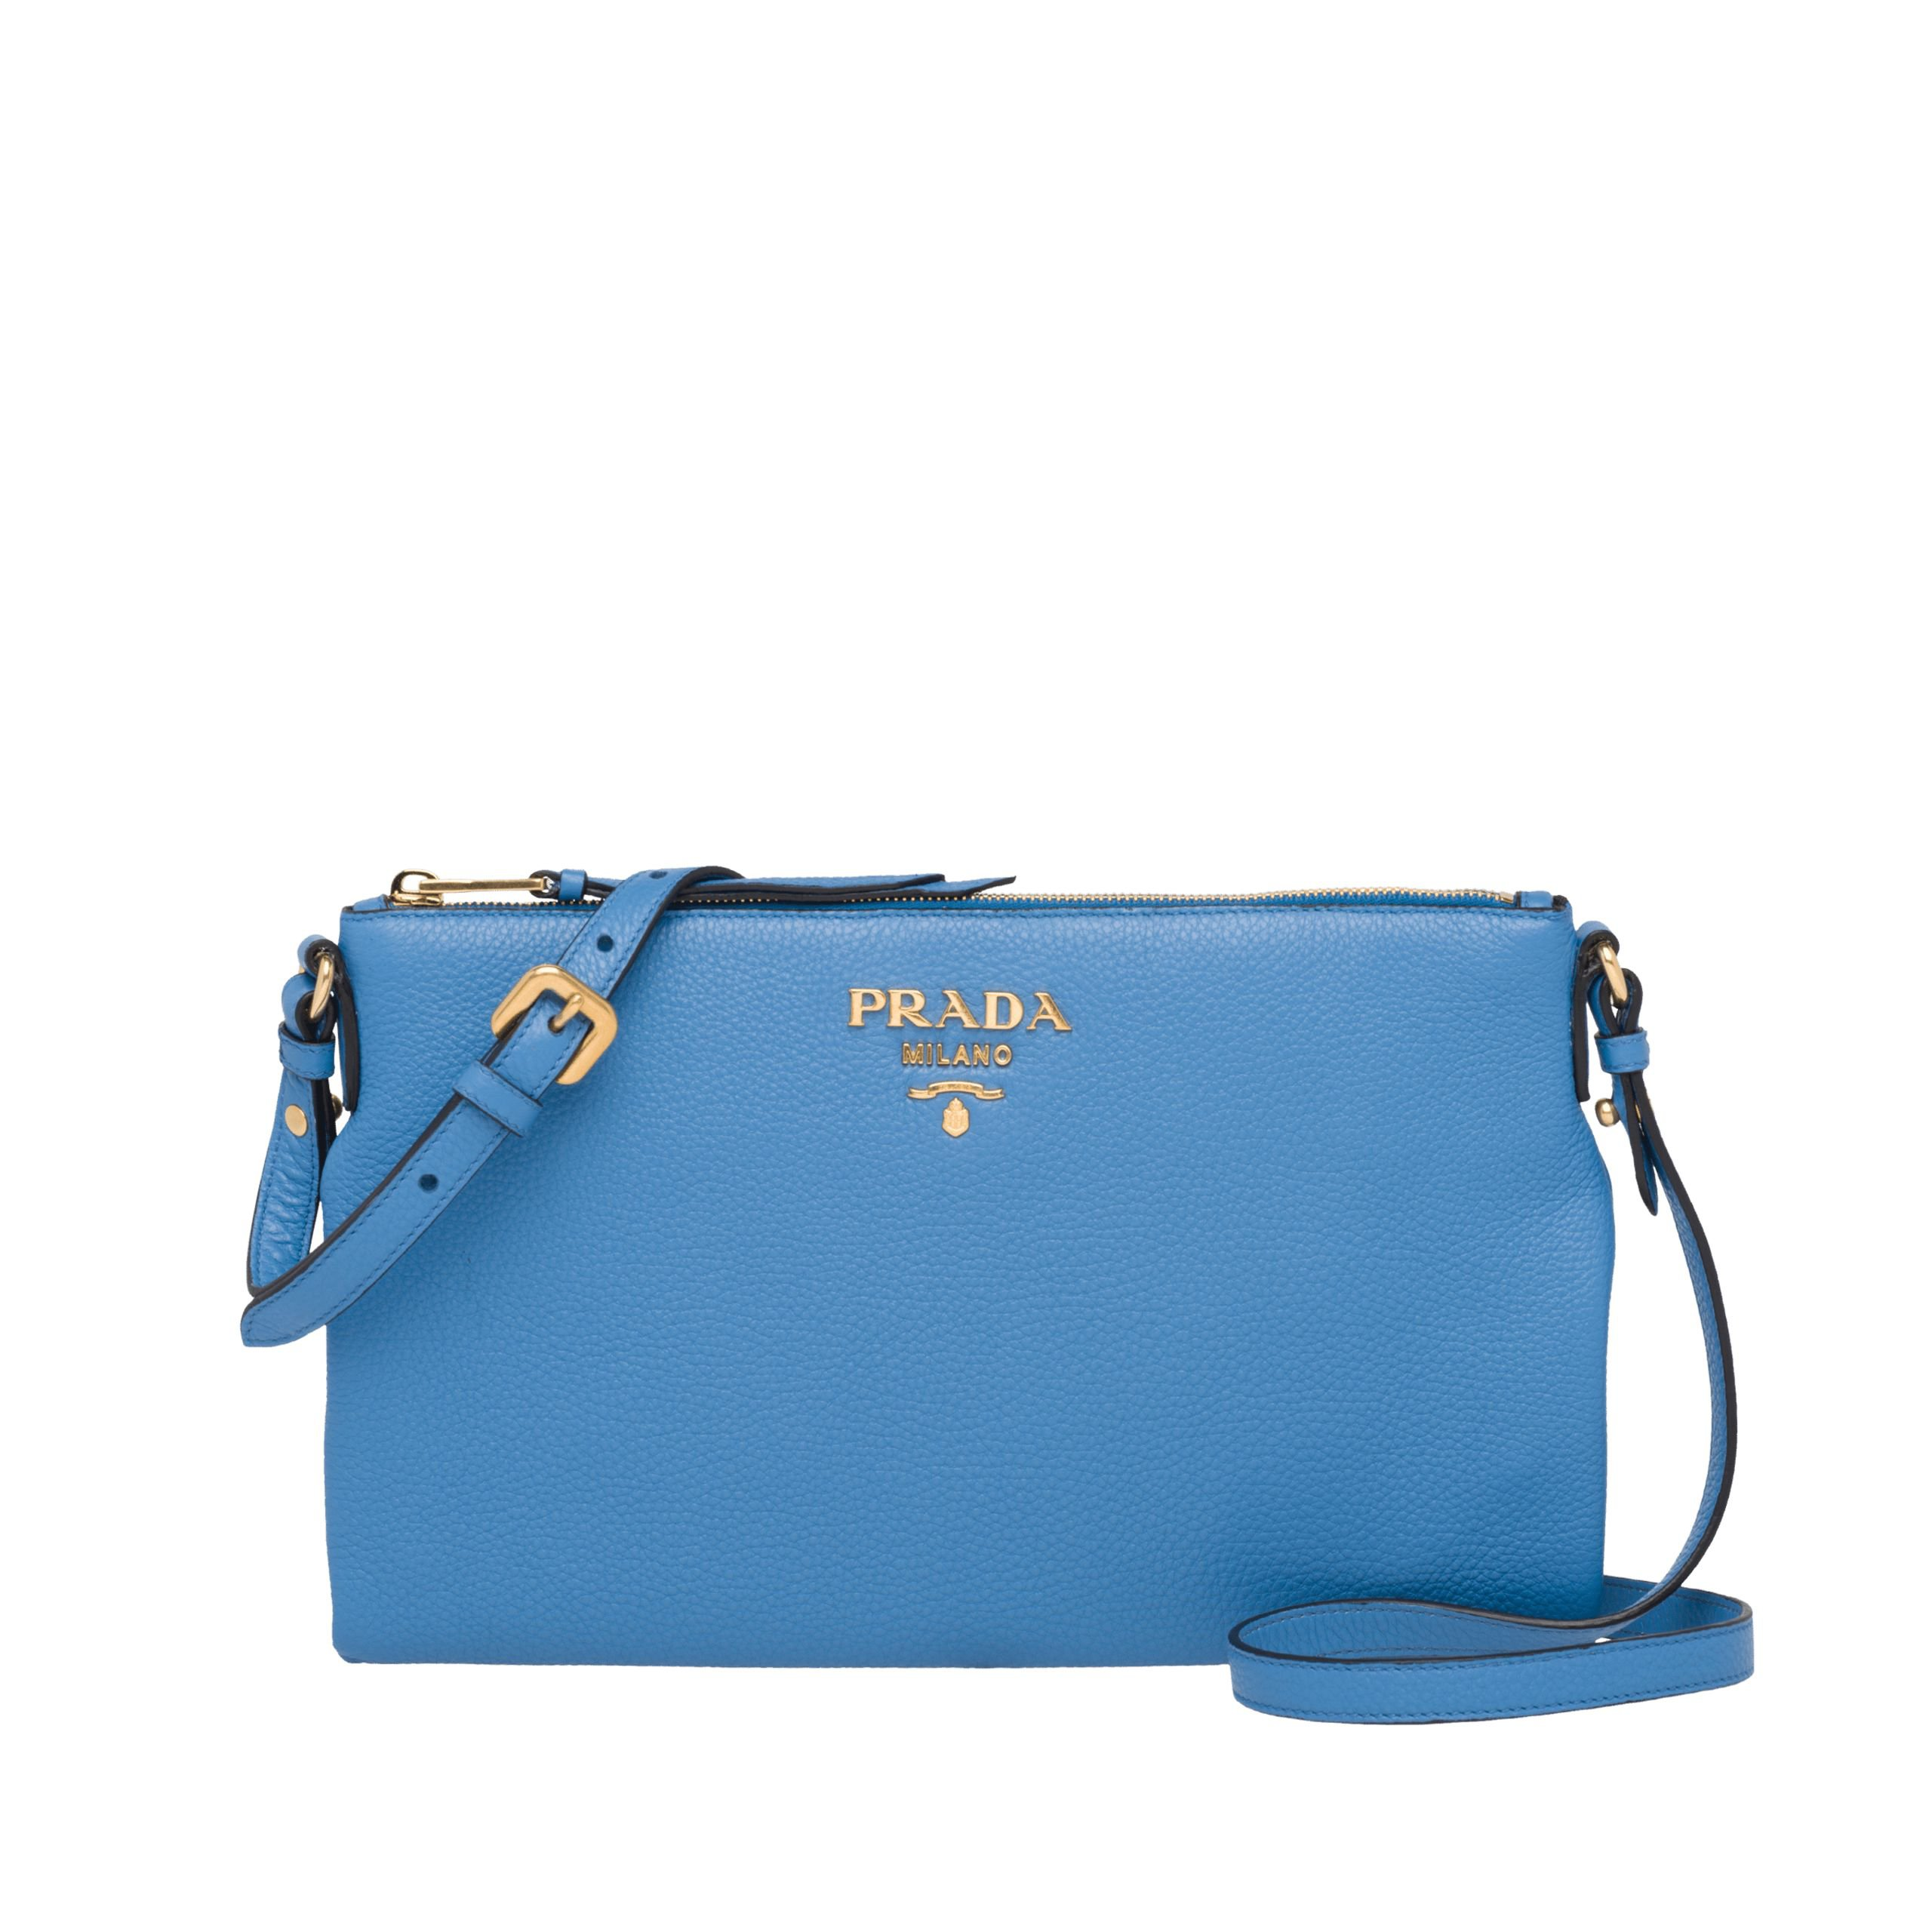 Prada Calf Leather Bag